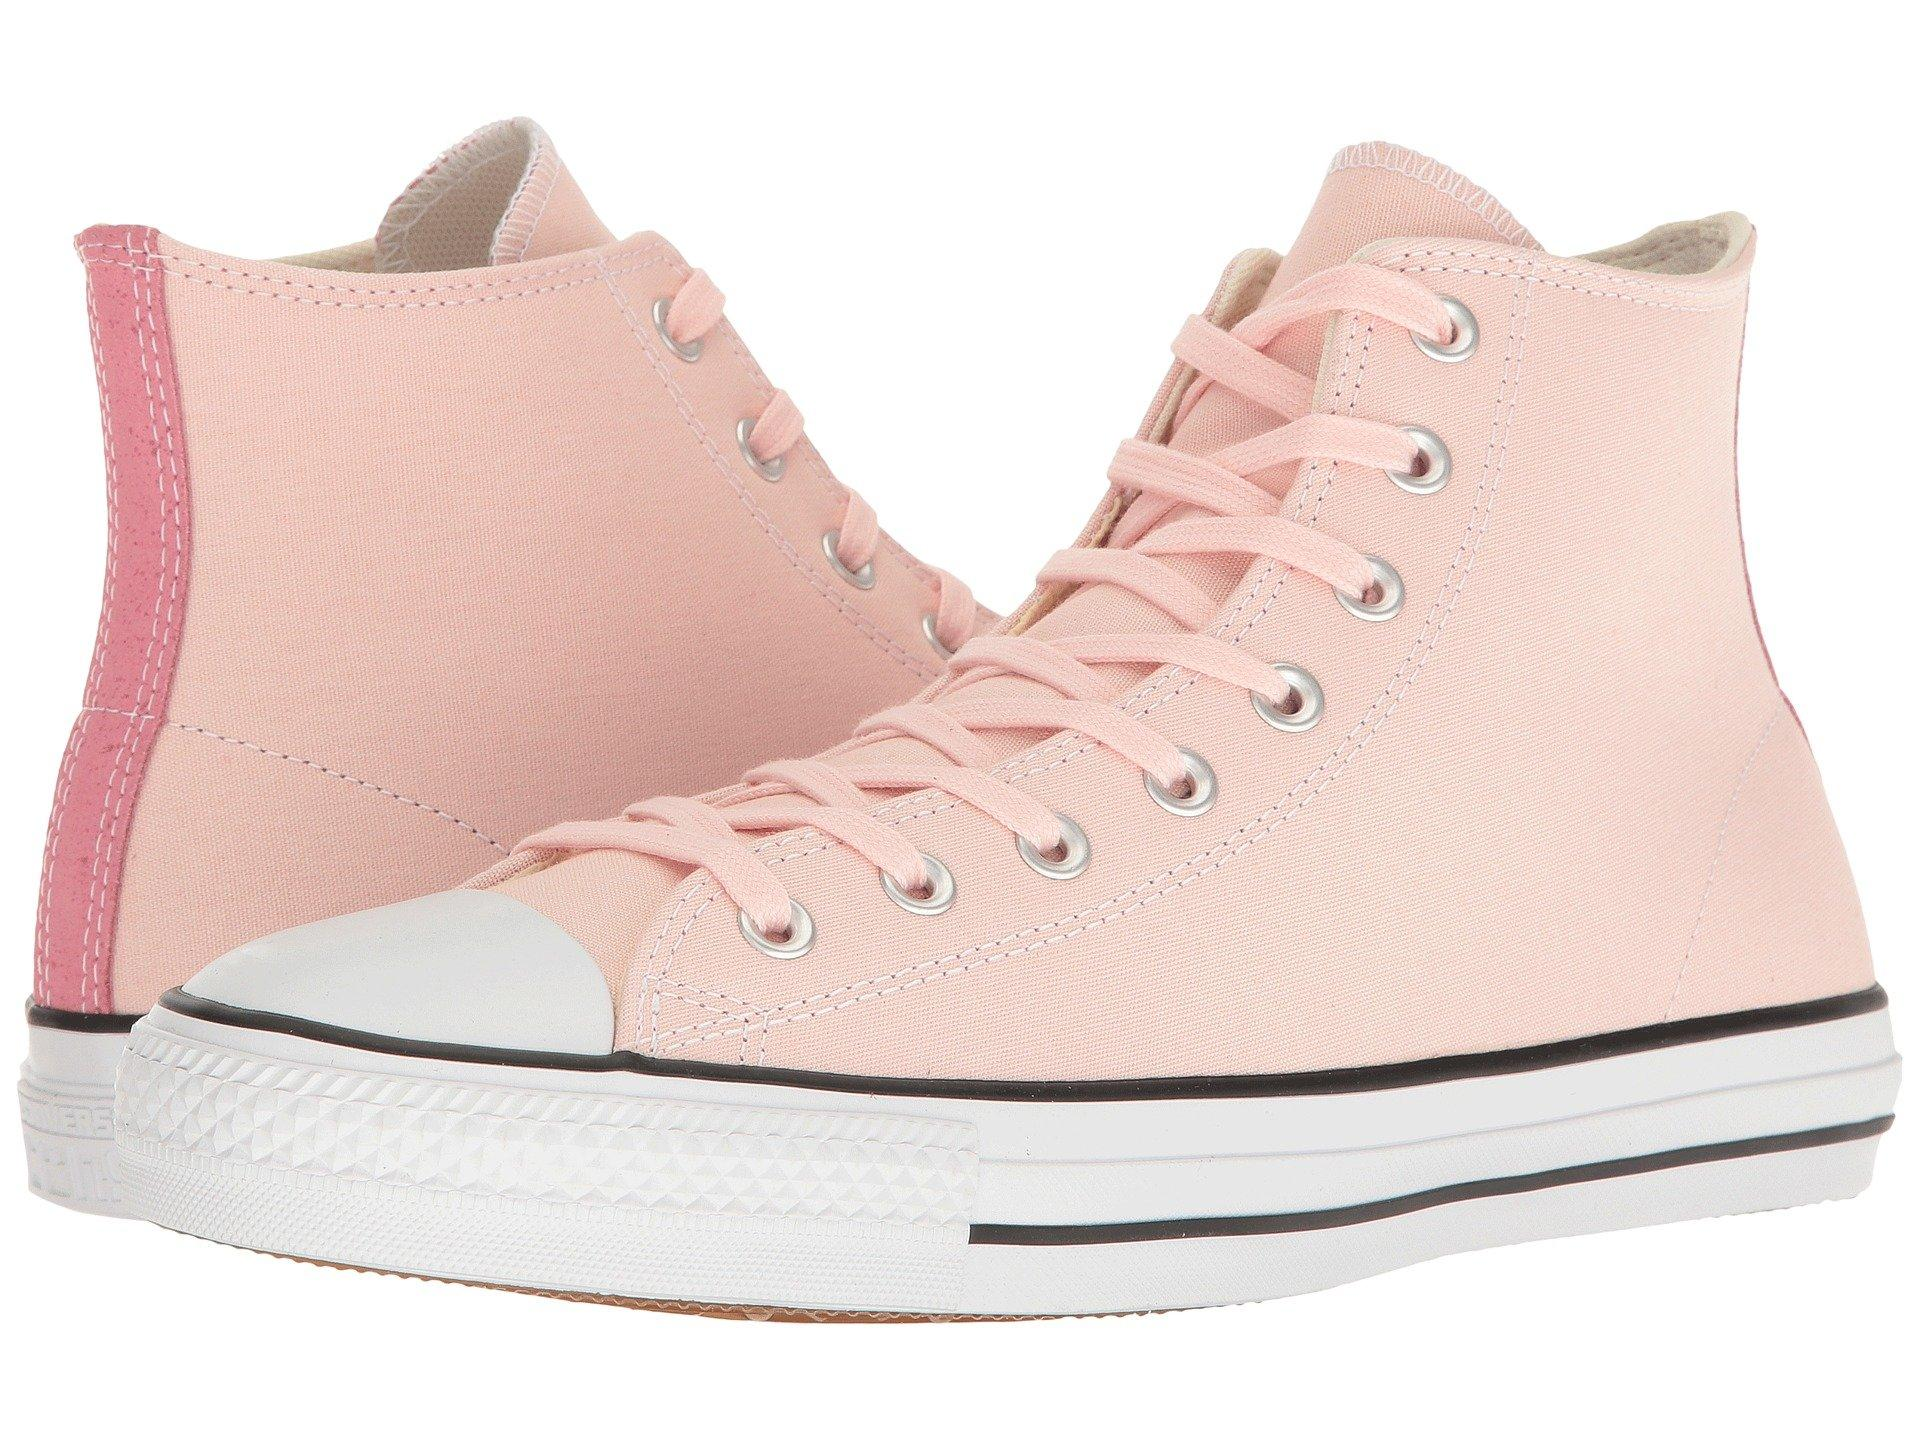 Chuck Taylor® All Star® Pro Suede Backed Canvas Hi, Vapor PinkPink GlowNatural